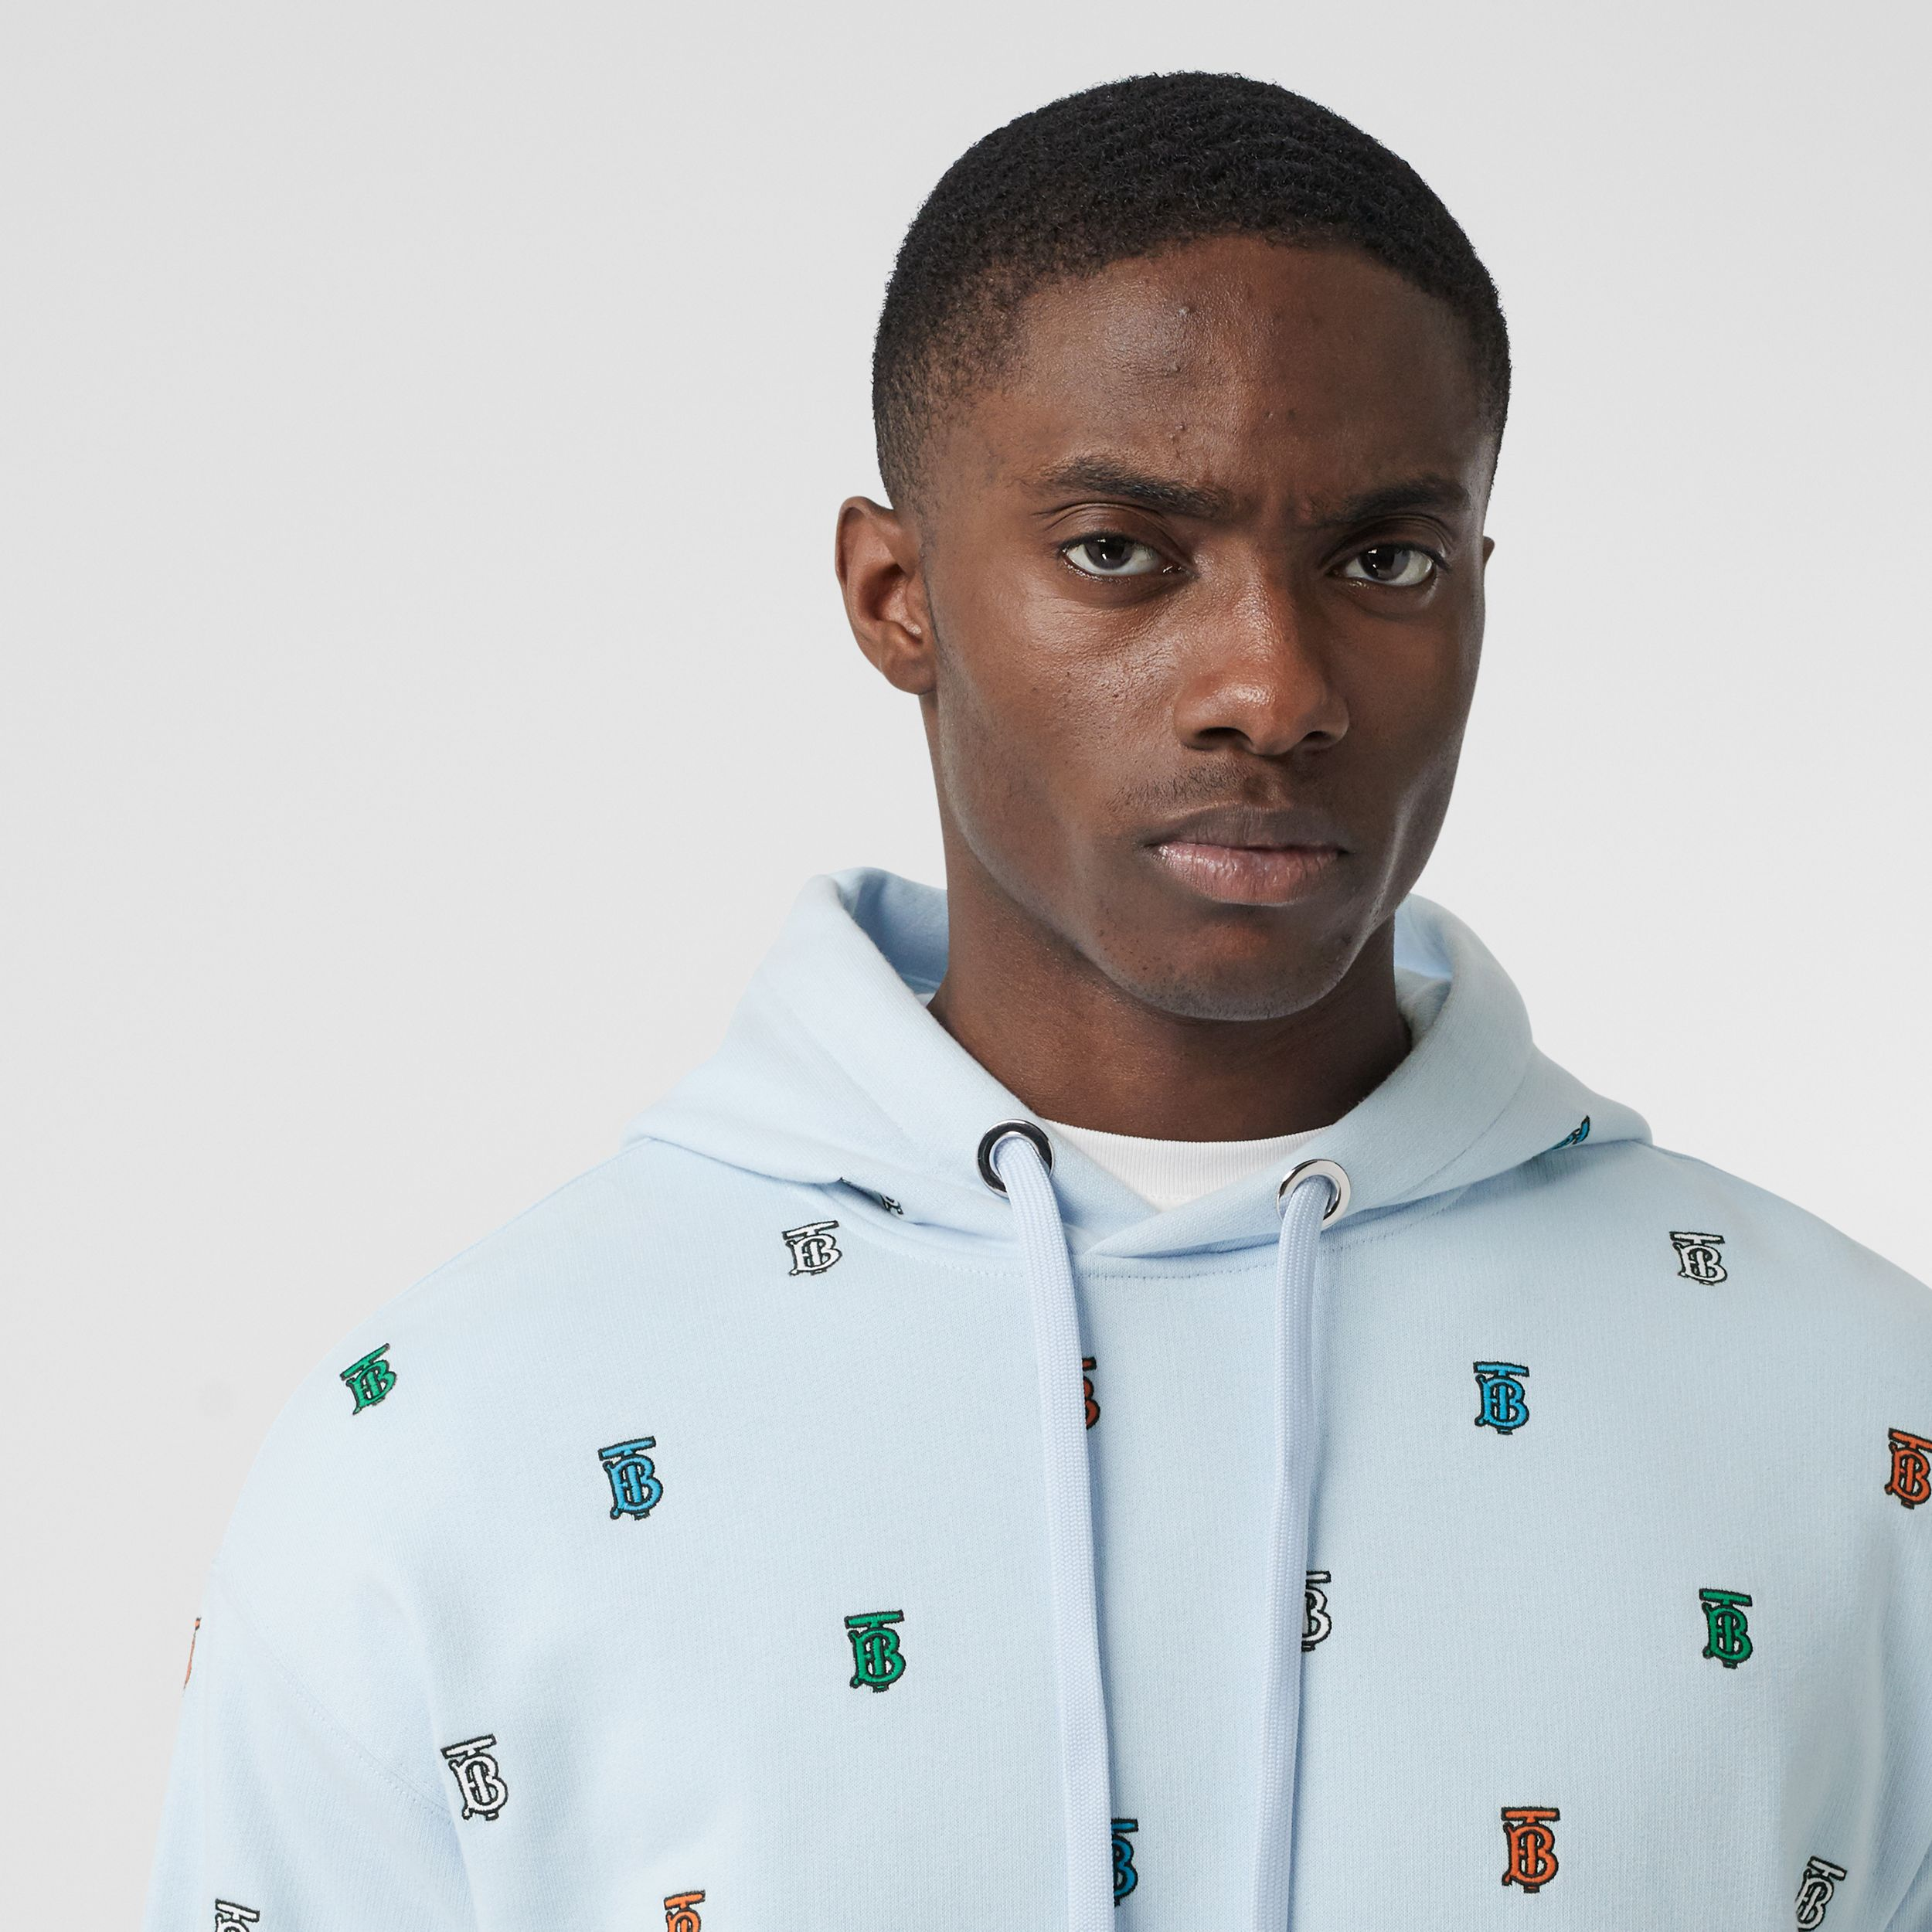 Monogram Motif Cotton Hoodie in Pale Blue - Men | Burberry - 2